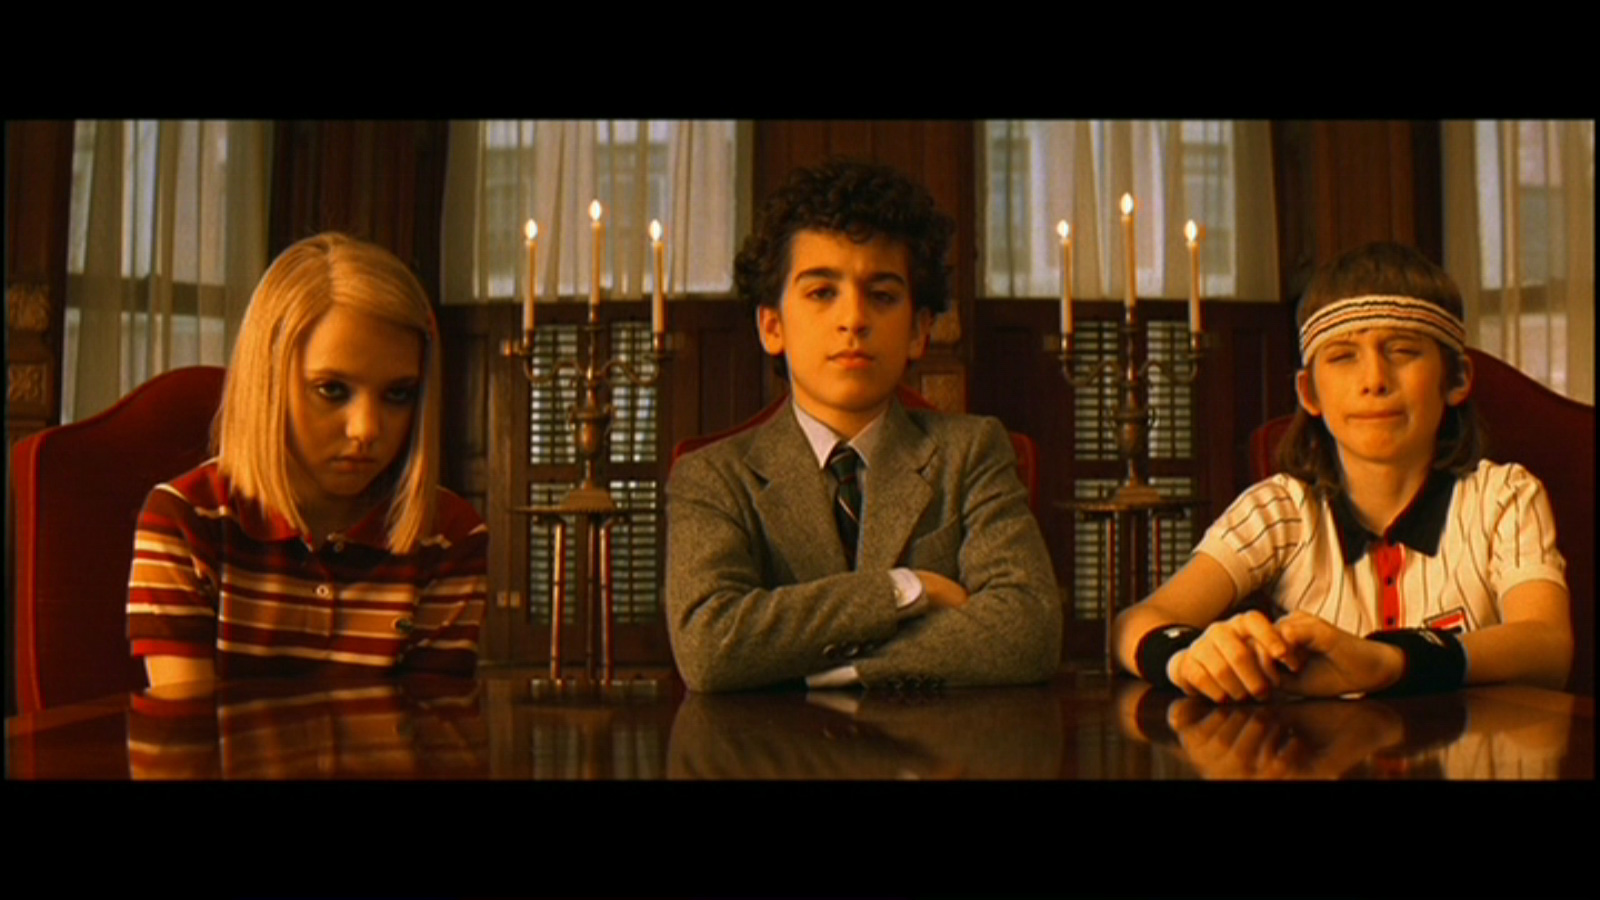 film essay royal and the tenenbaums a tale of fathers and film essay royal and the tenenbaums a tale of fathers and children rose coloured ray bans a film blog